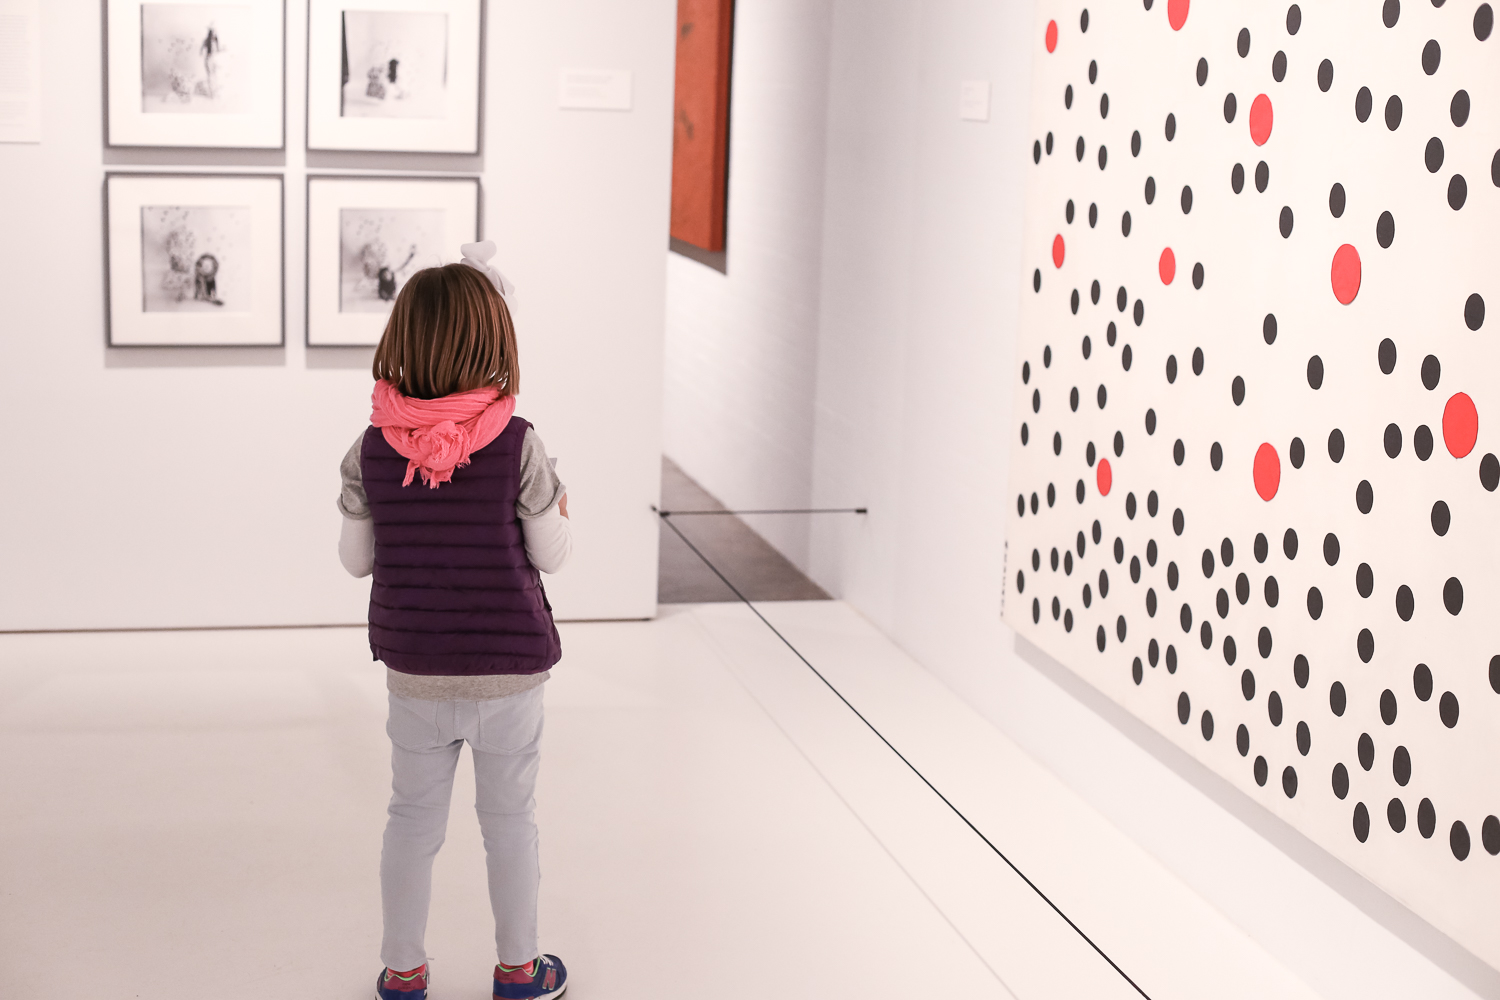 Tips and tricks for visiting the Yayoi Kusama exhibit with children at the Hirshhorn Museum in Washington, DC.